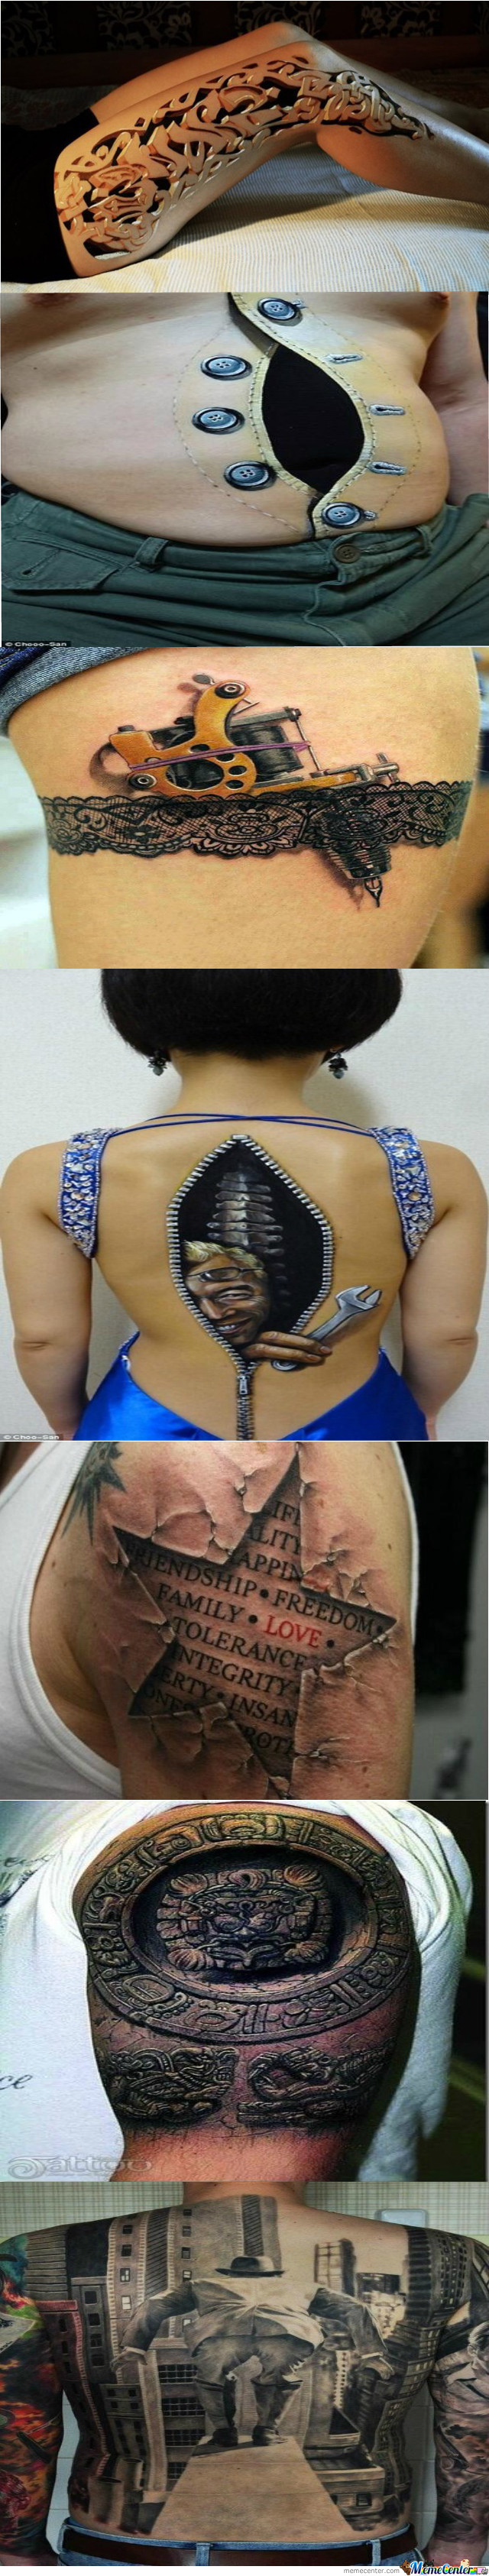 Awesome Looking Tattoos